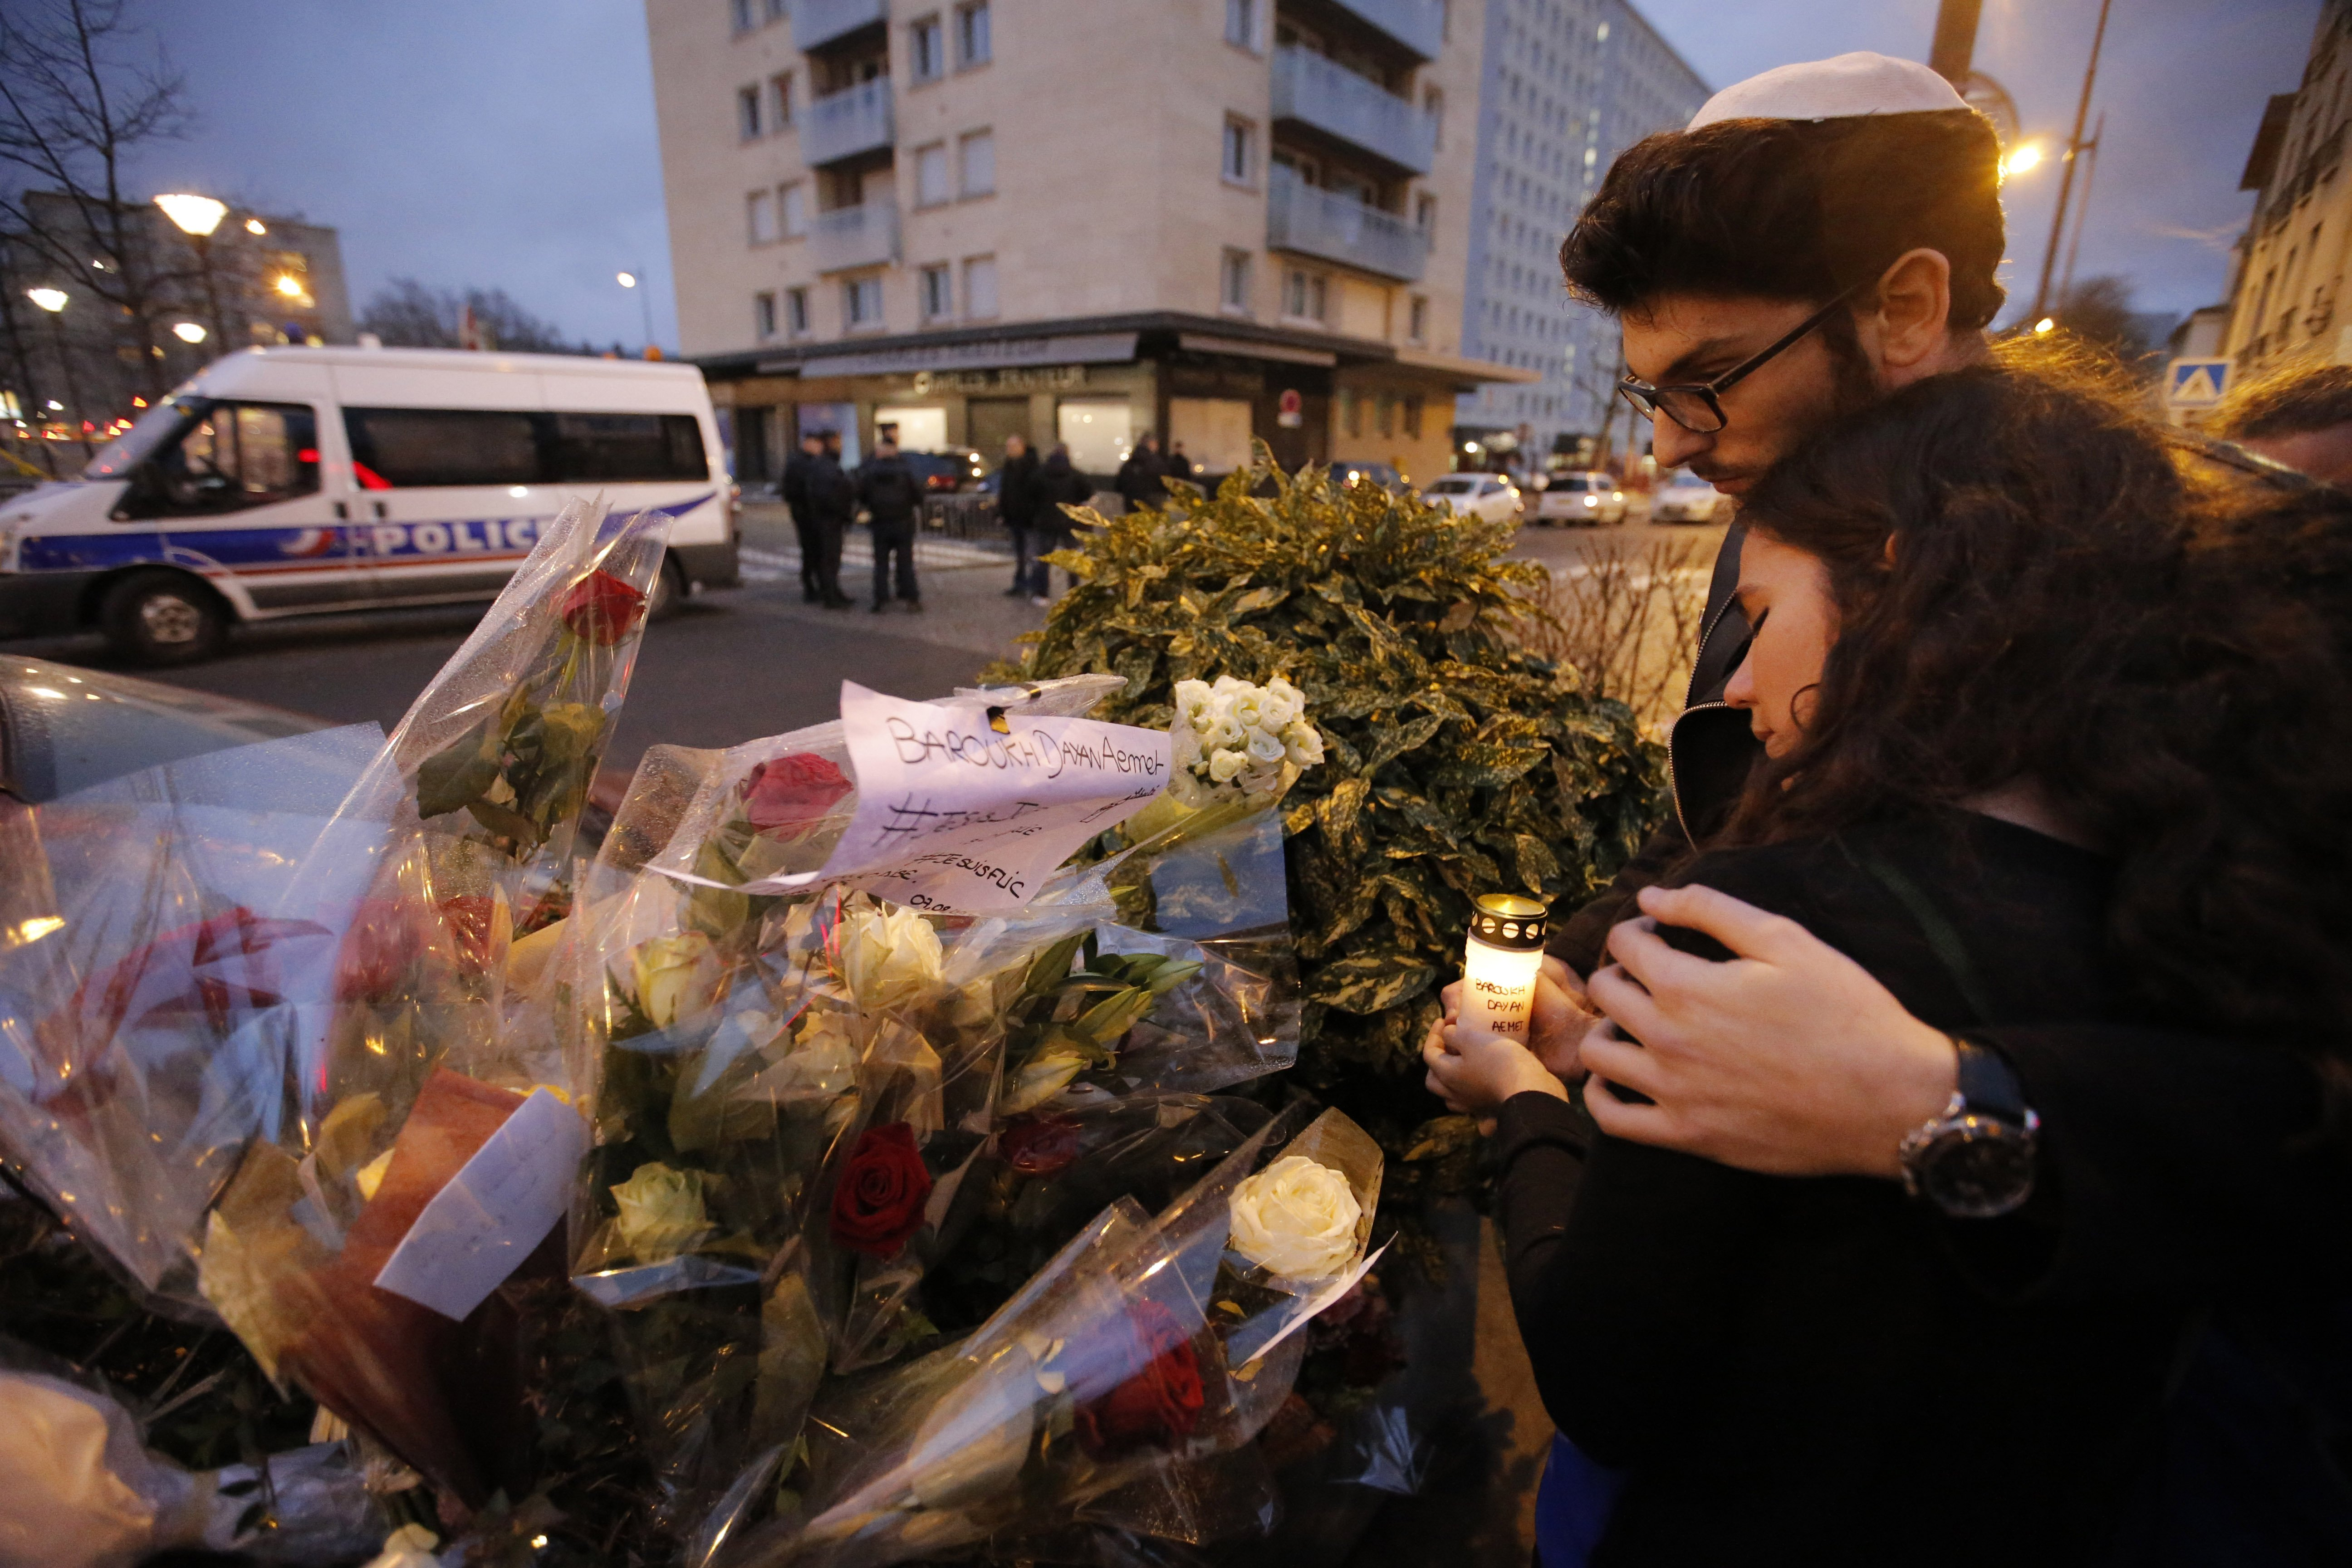 Esther Bekerman, 19, left, a cousin of one of the hostages, and Eliahou Rouas Cohen, 19, right, light a candle at a makeshift memorial near a kosher grocery store where four hostages were killed in Paris, Jan. 10, 2015.